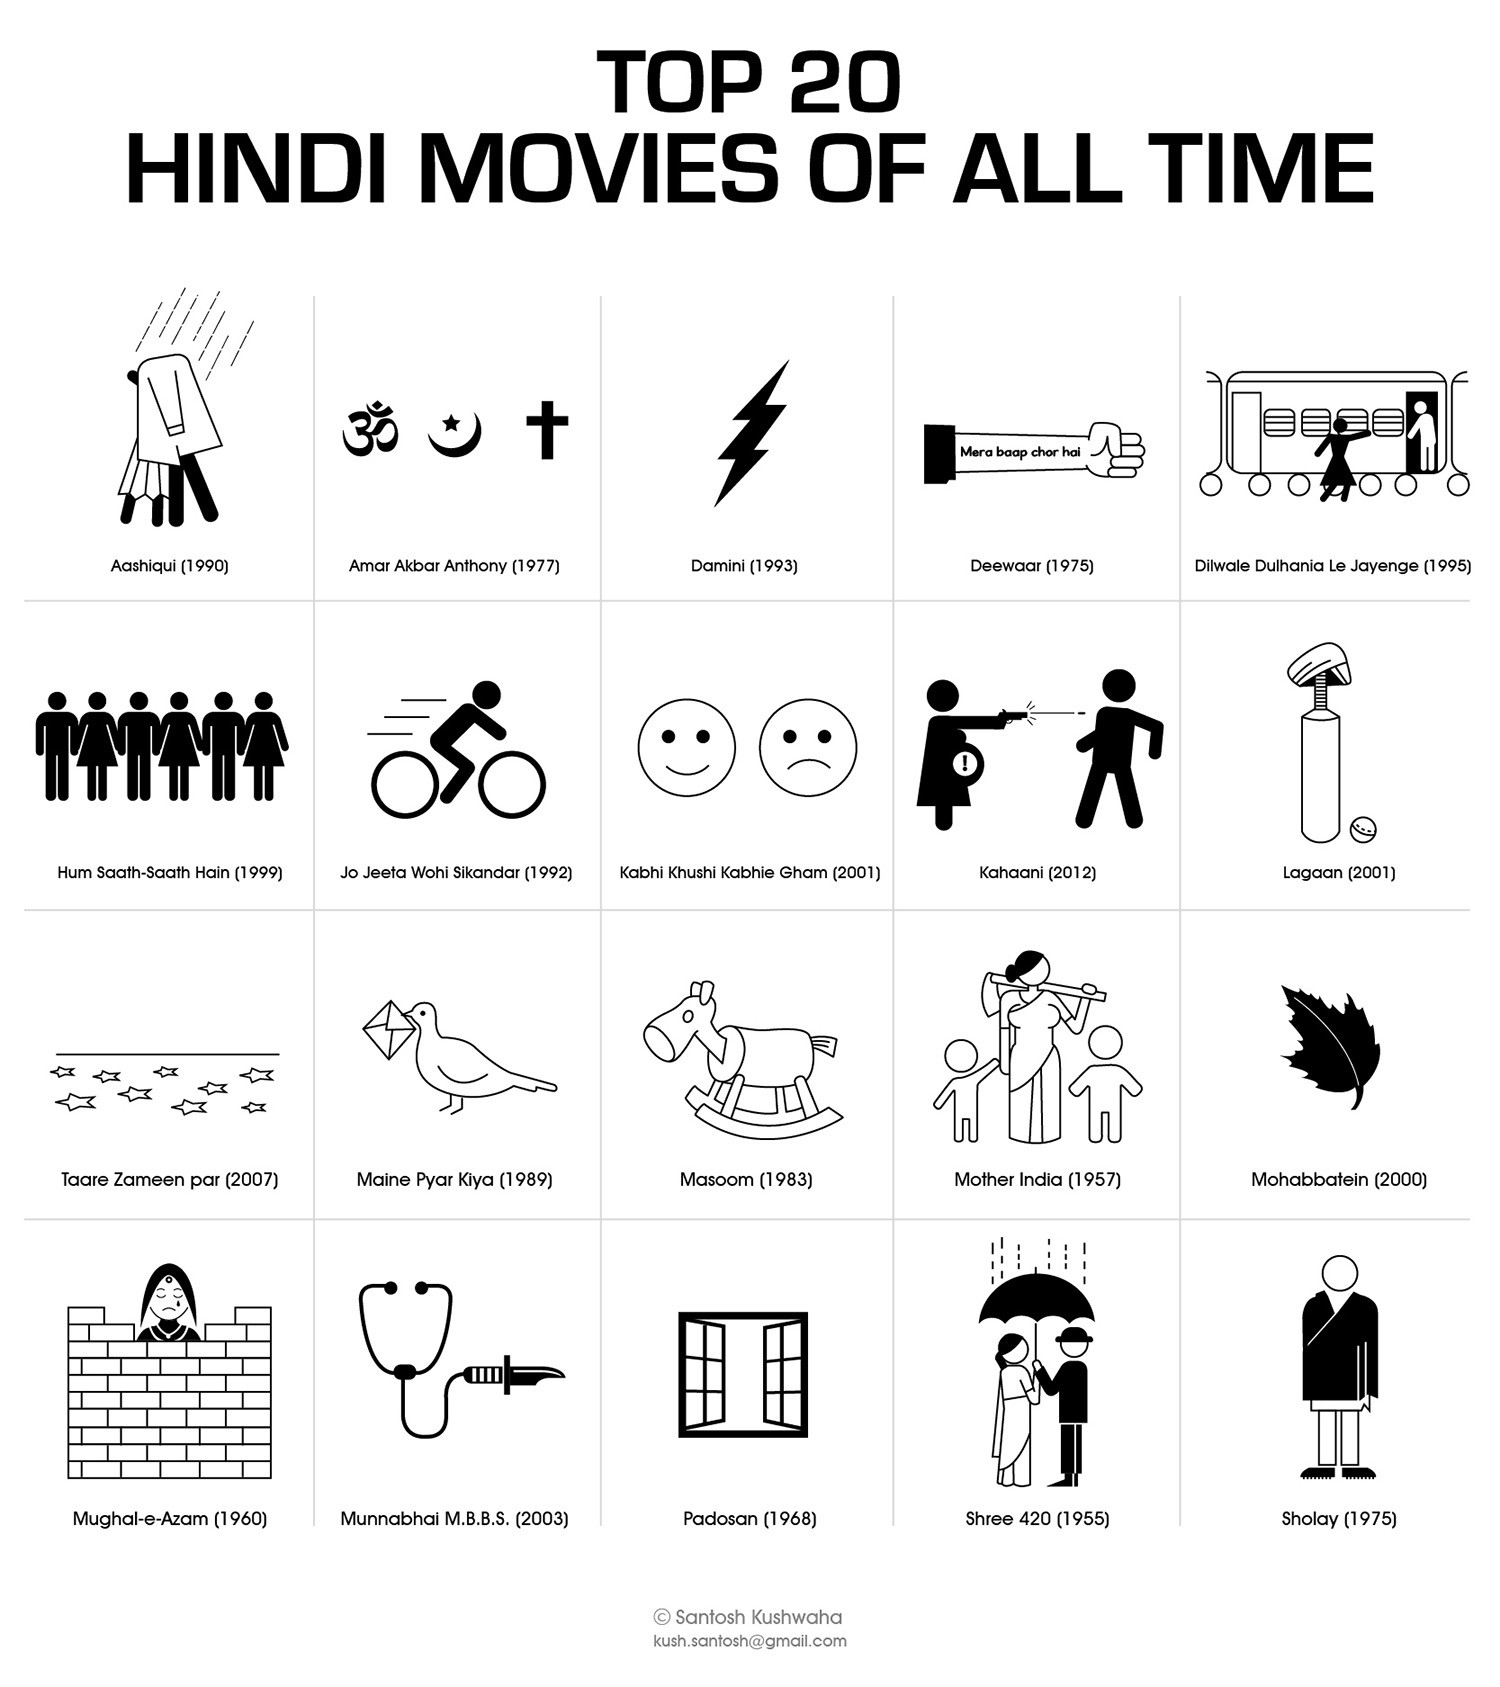 Top 20 Hindi Movies of all time Infographic